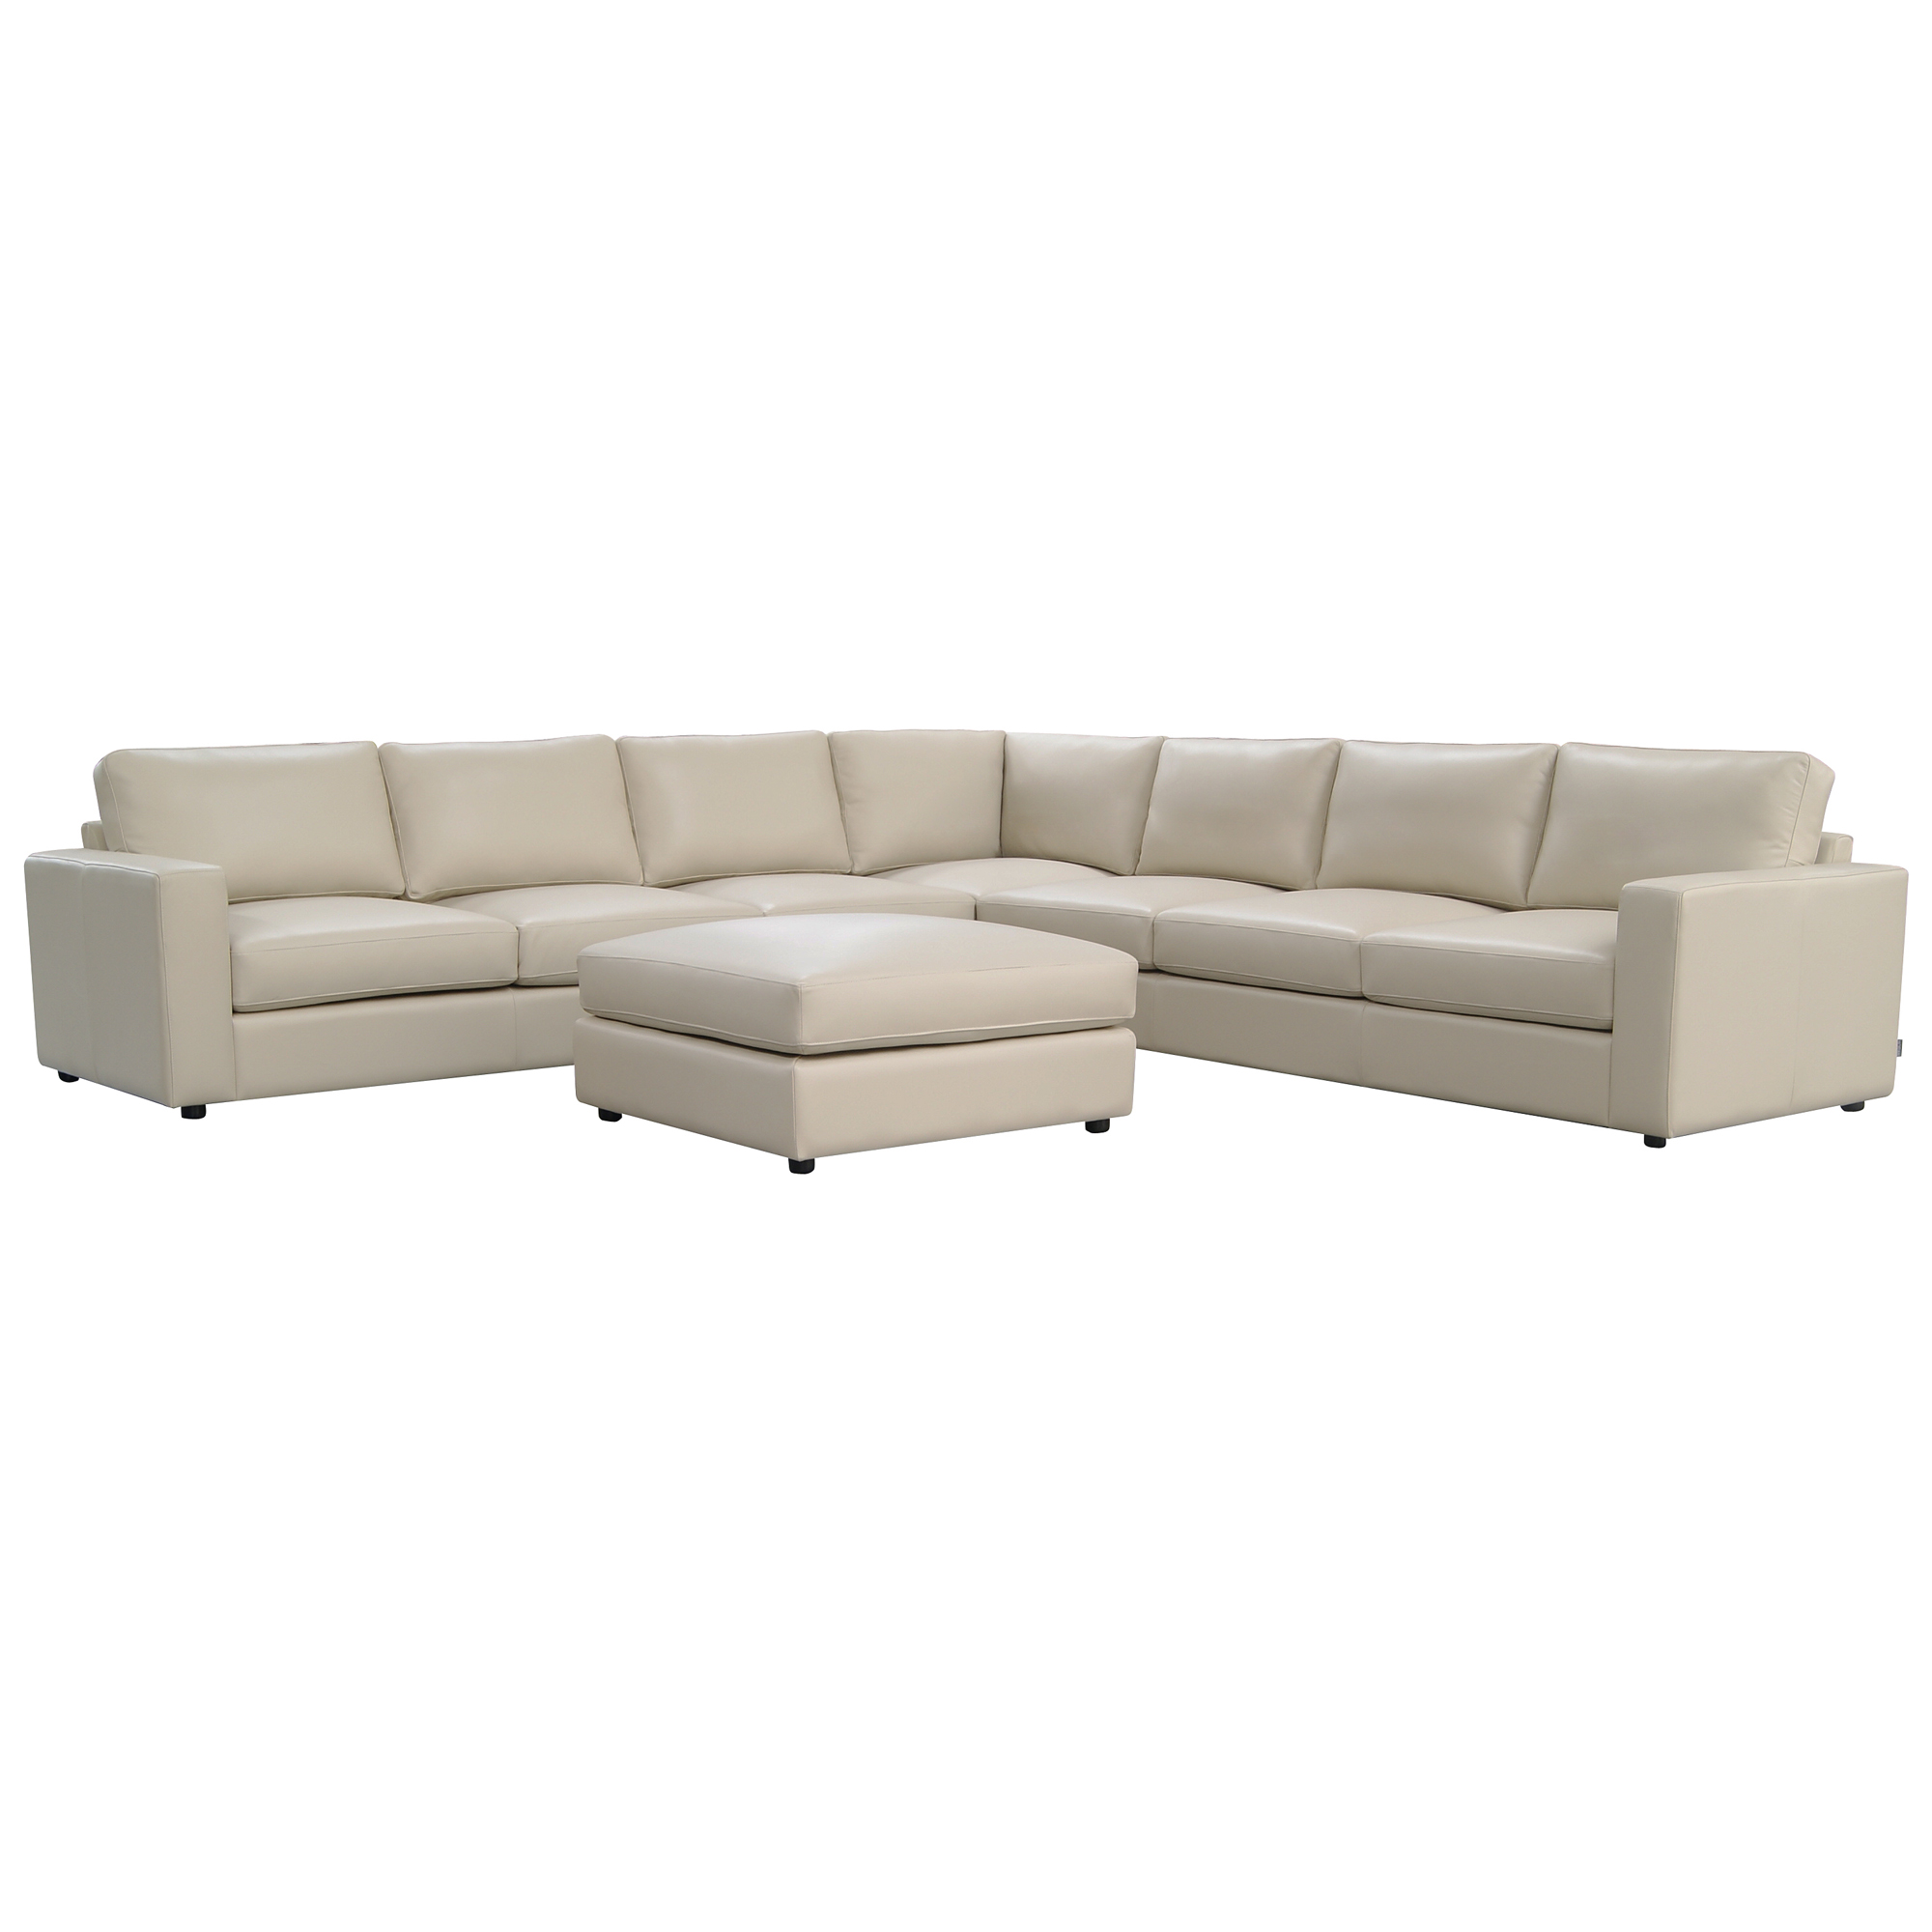 Sofa Beds Perth Sofa Beds Moran Furniture